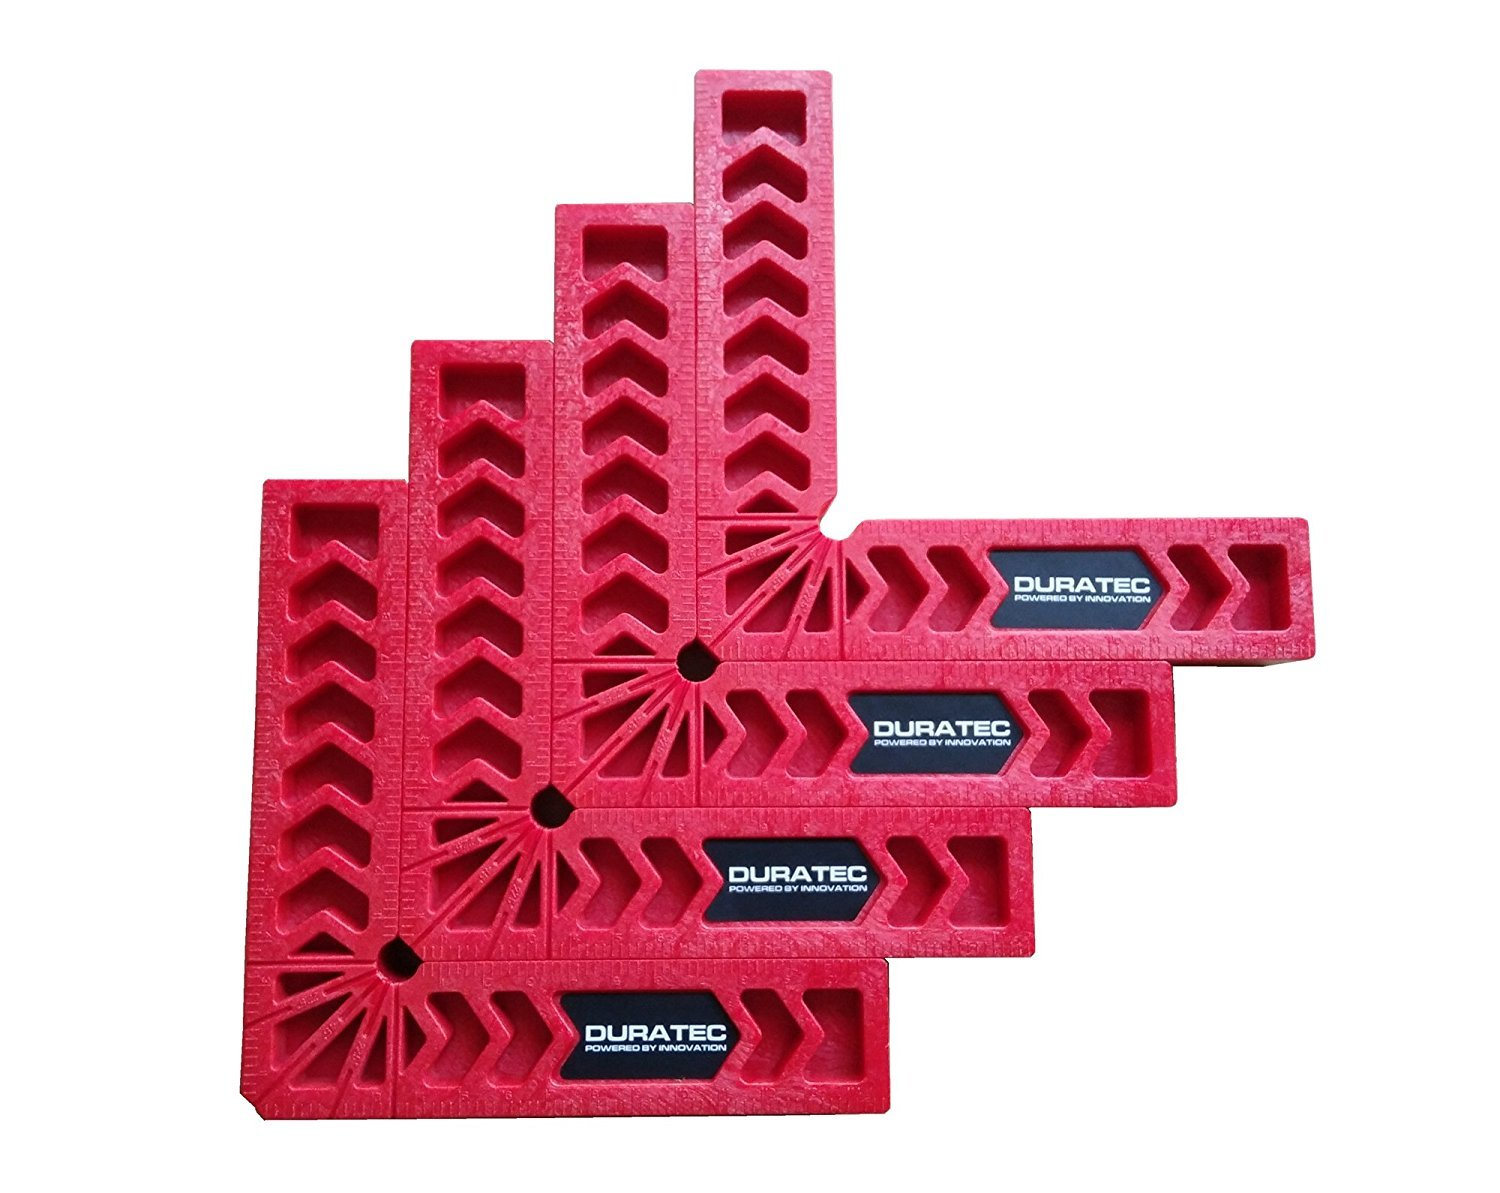 Duratec Positioning Squares,Set of 4 (6) by Duratec